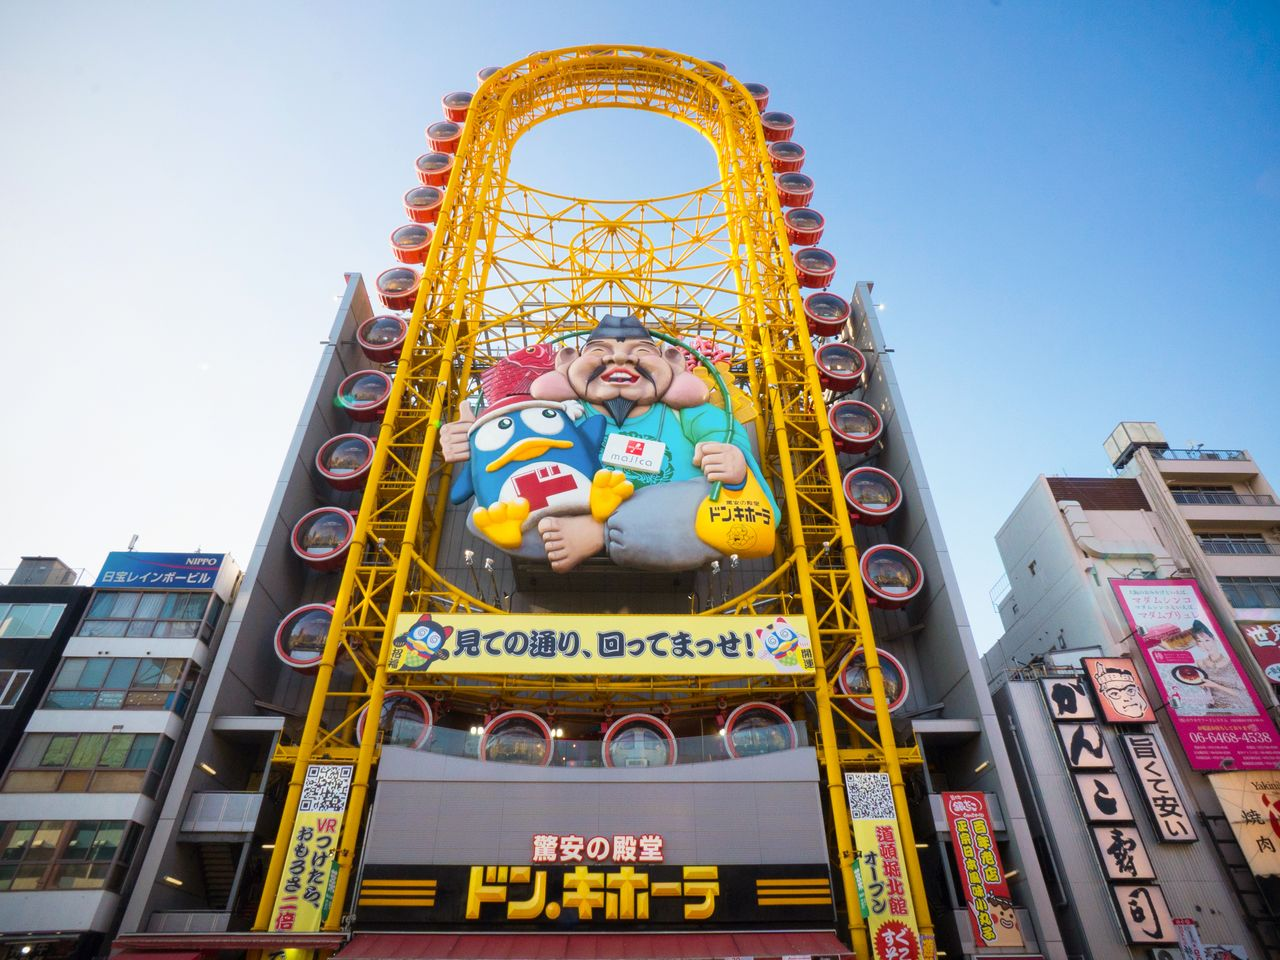 After doing some shopping at Don Quijote in Dōtonbori, try the Ebisu Tower ferris wheel.